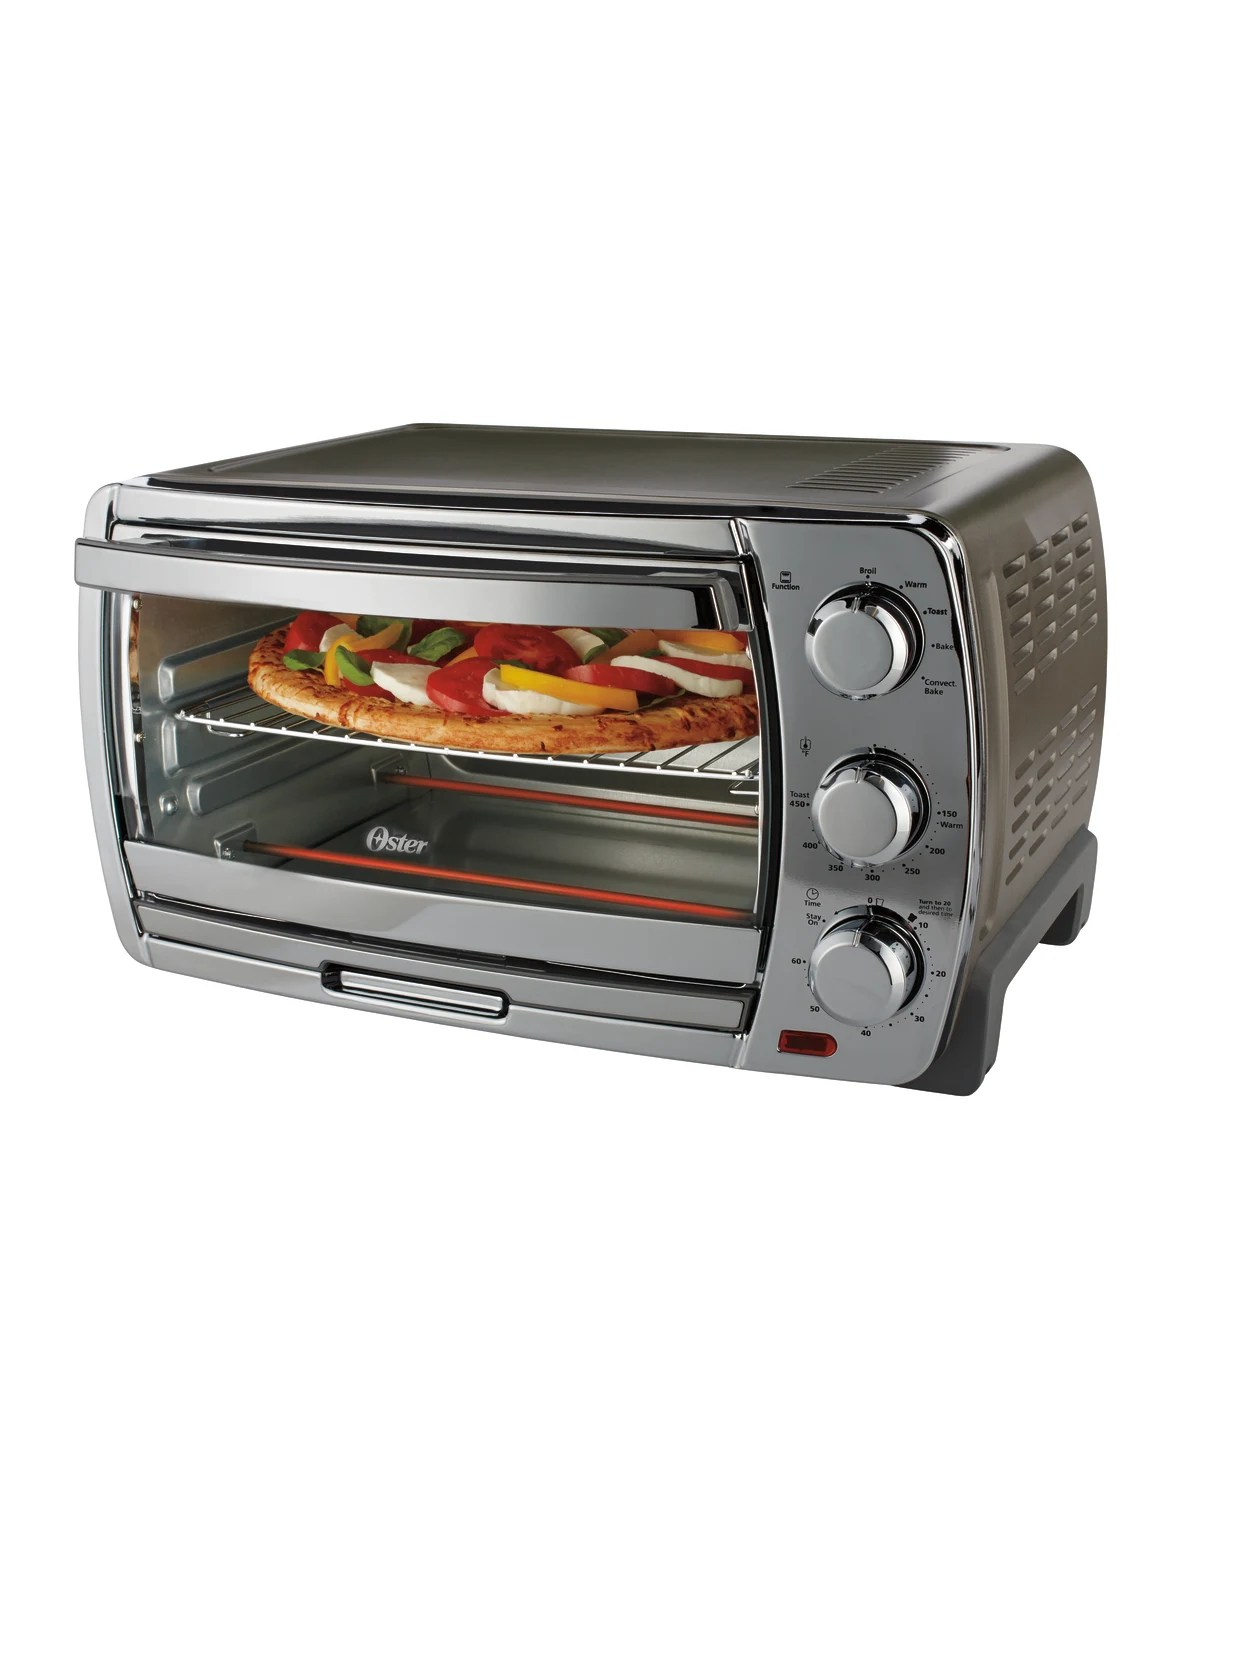 Oster Countertop Convection Toaster Oven Silver Office Depot